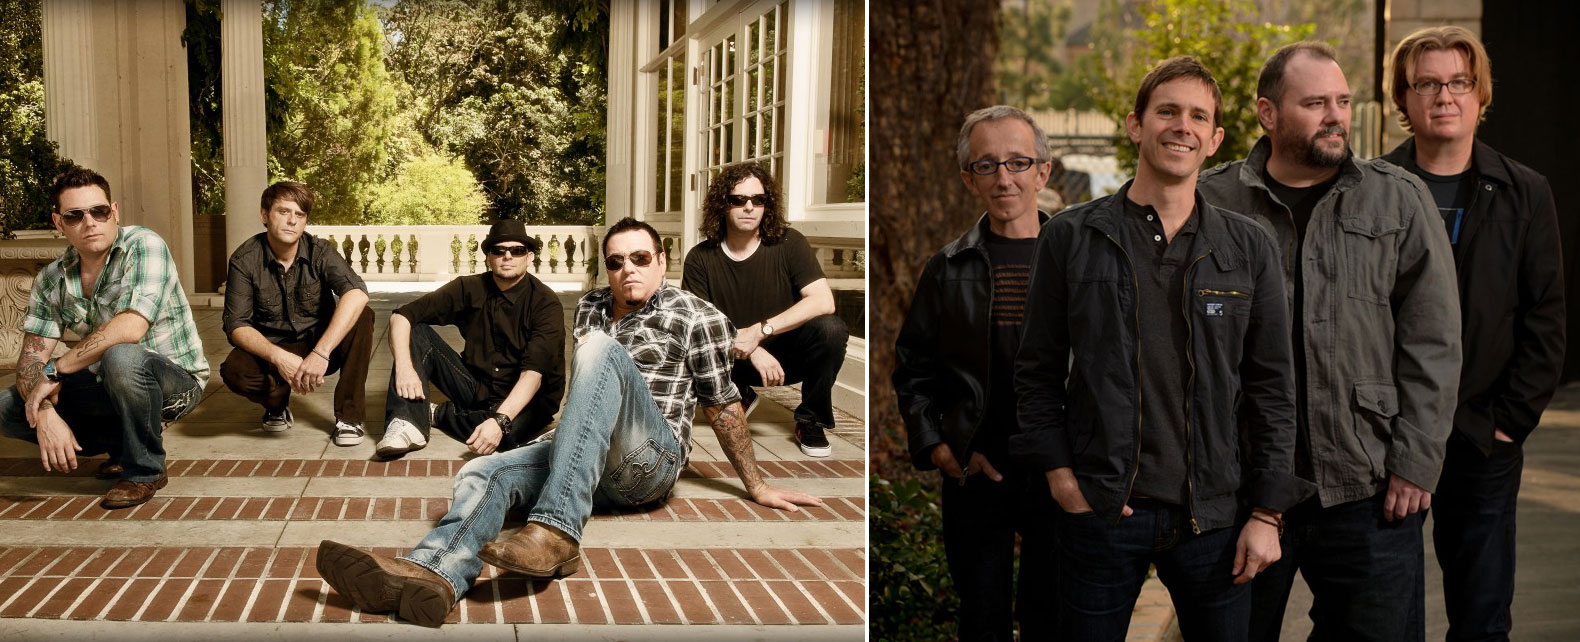 The weekend's Rock of Vegas features Smash Mouth and Toad the Wet Sprocket